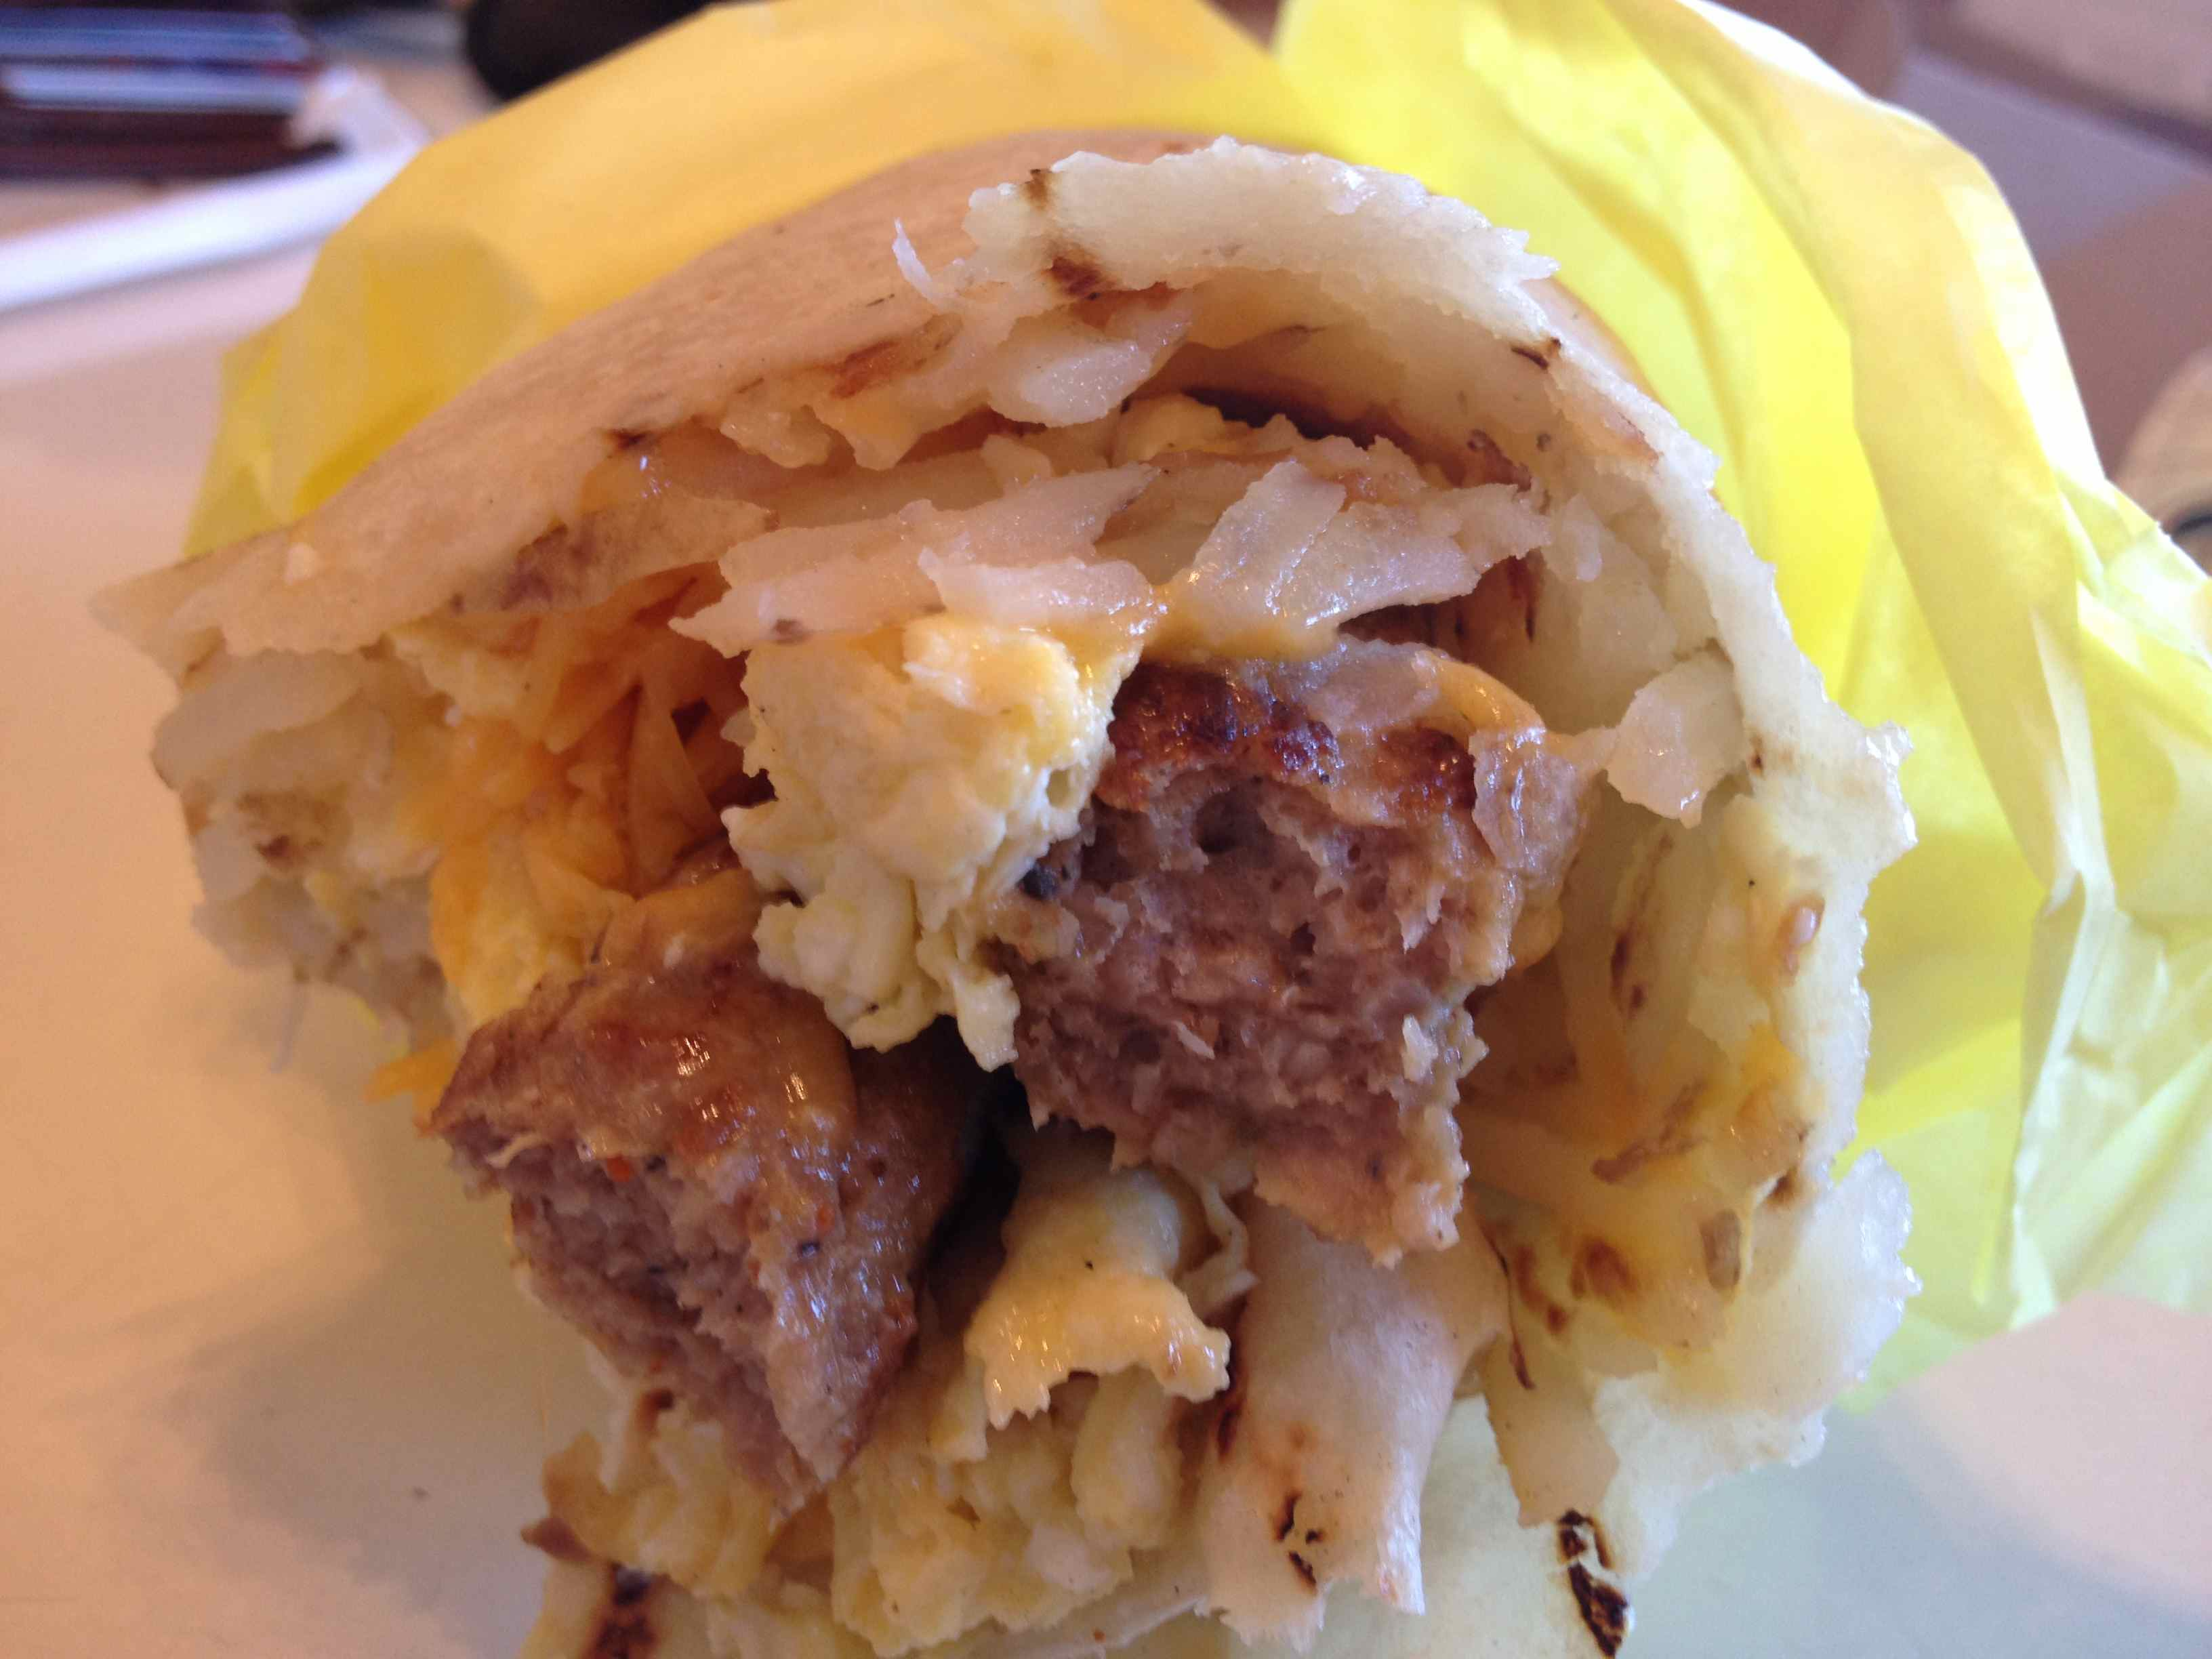 Lucky Boy - Breakfast Burrito with sausage